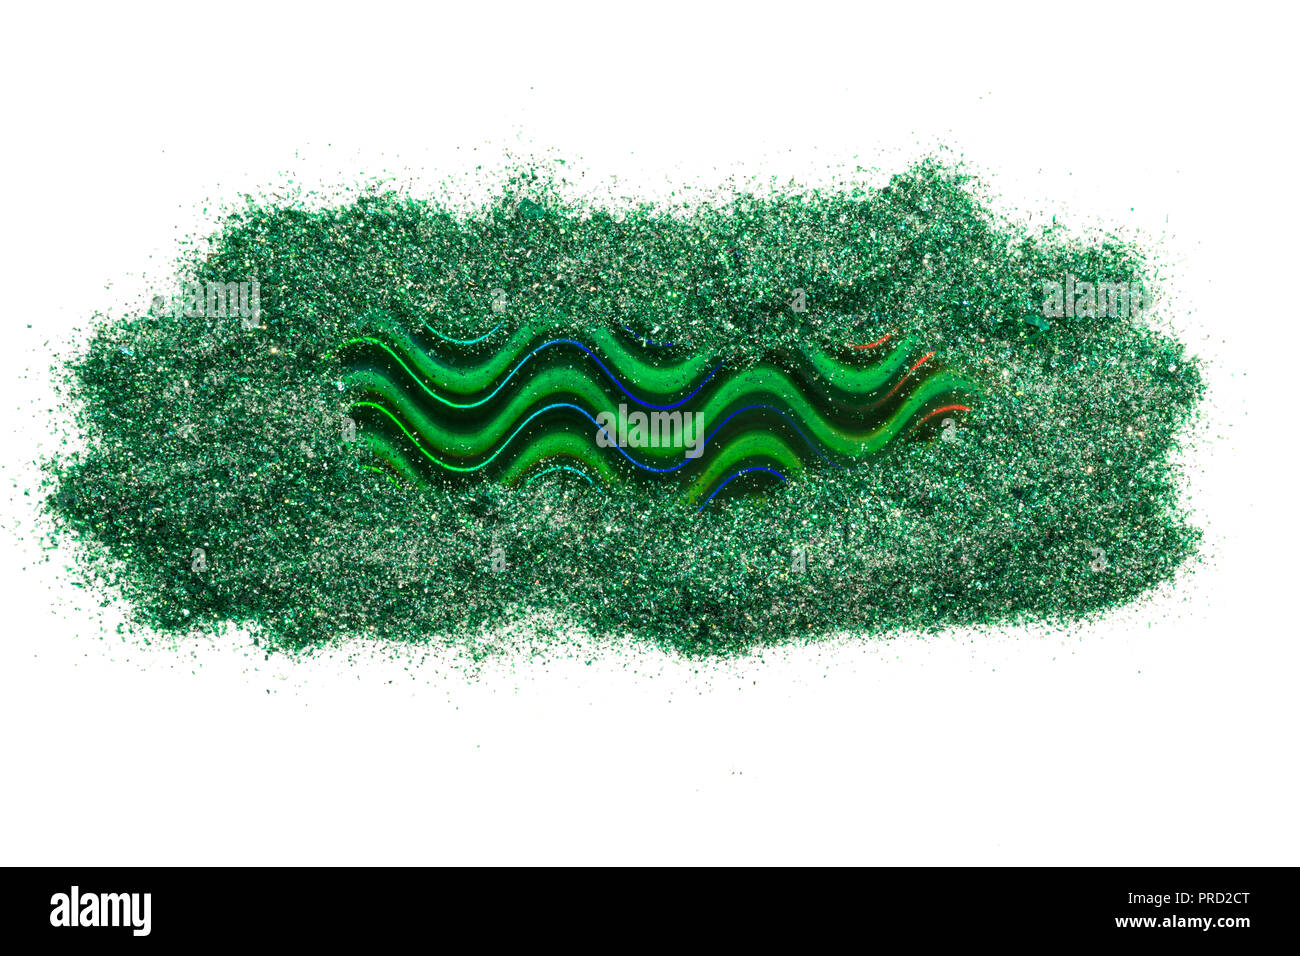 Holographic strip of green color, isolated on white background. Frame for text. - Stock Image